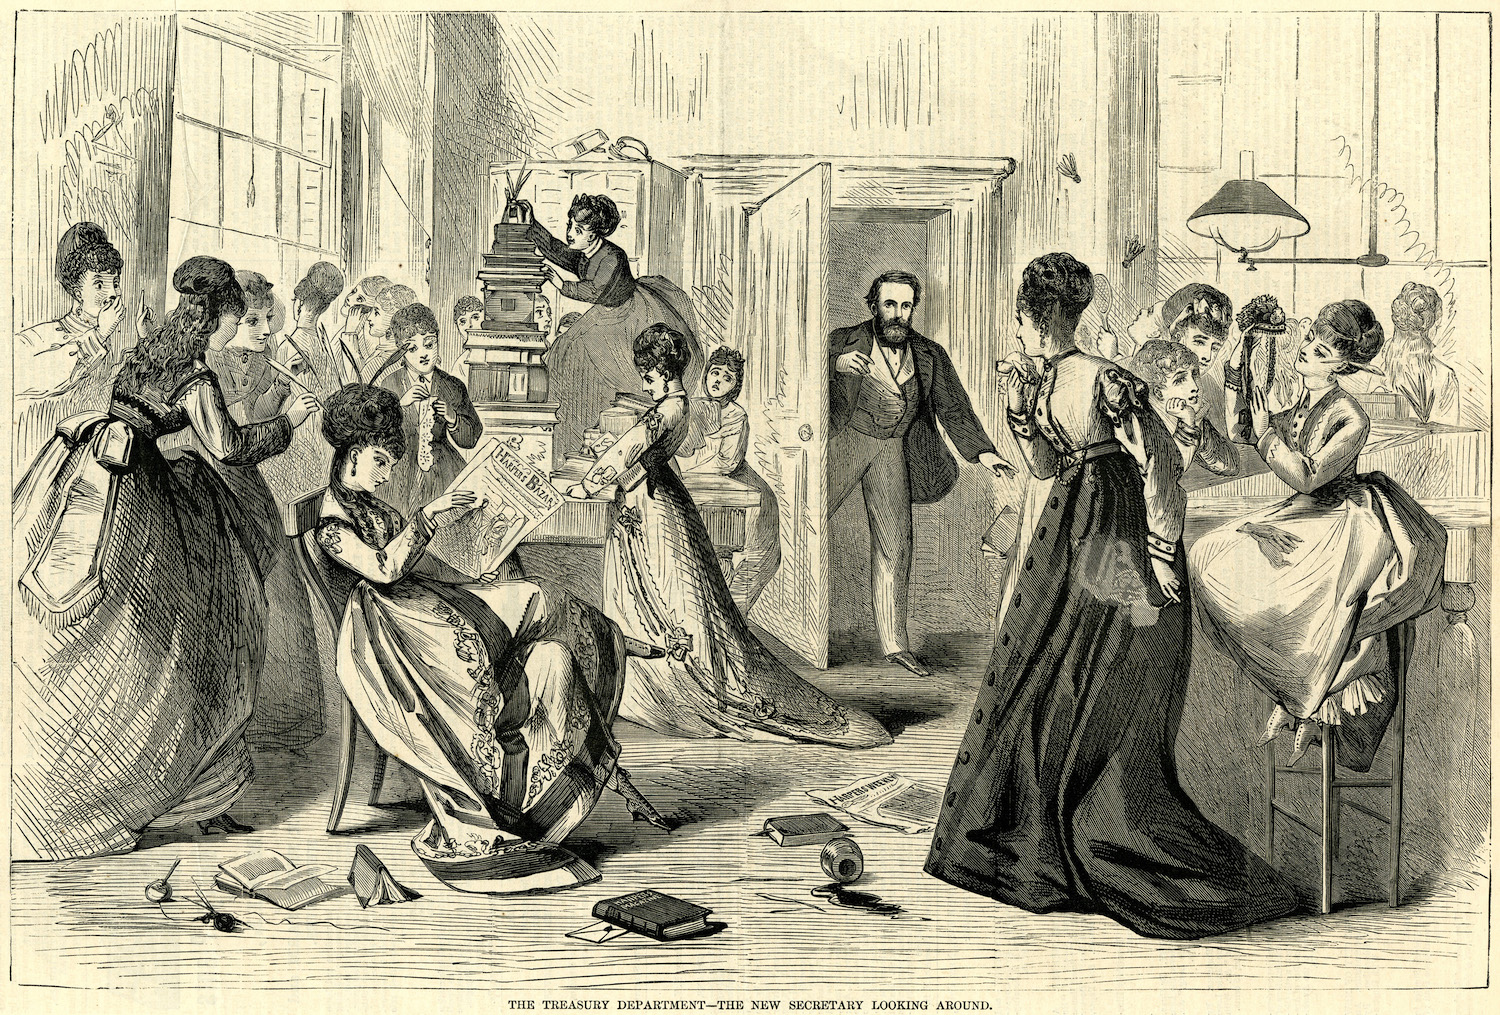 women s in 19 the century We tend to think of the 19th century as a primitive time, when the main form of entertainment was sitting around and waiting for the but victorian-era folks were just like you and i they too enjoyed the finer things in life, like looking at pretty women being pretty.